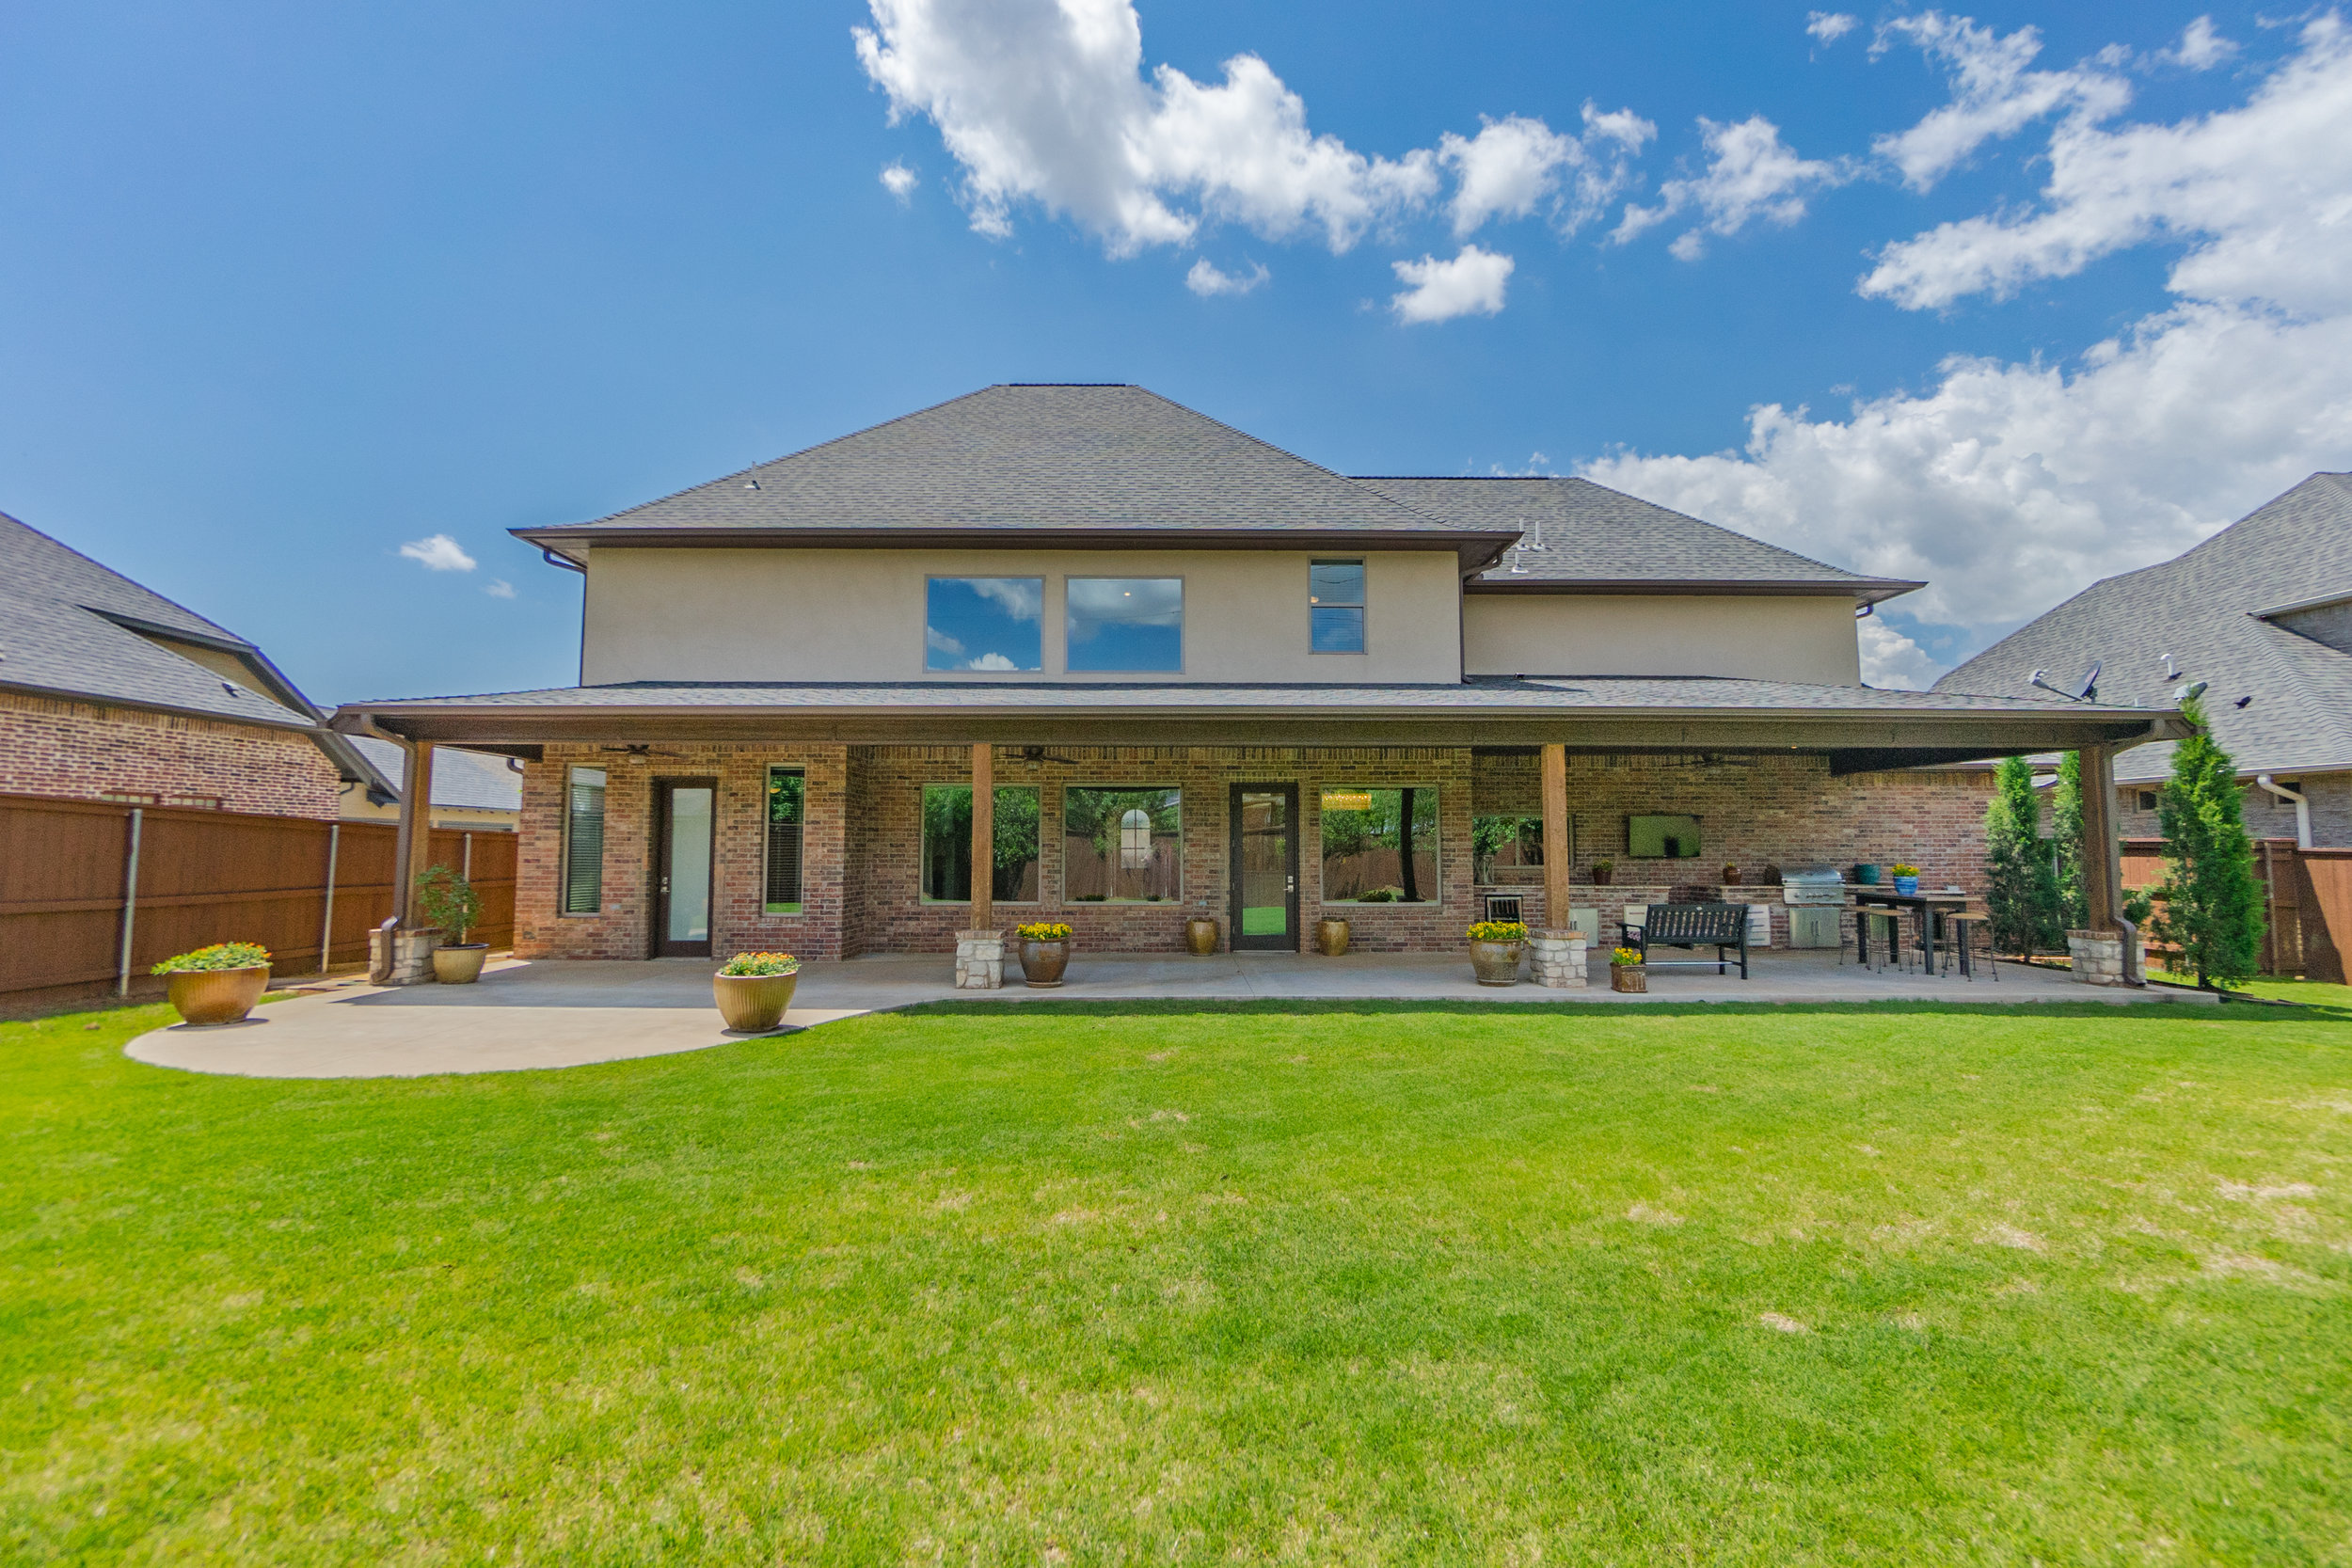 generous backyard and covered patio - all designed for fun and entertaining